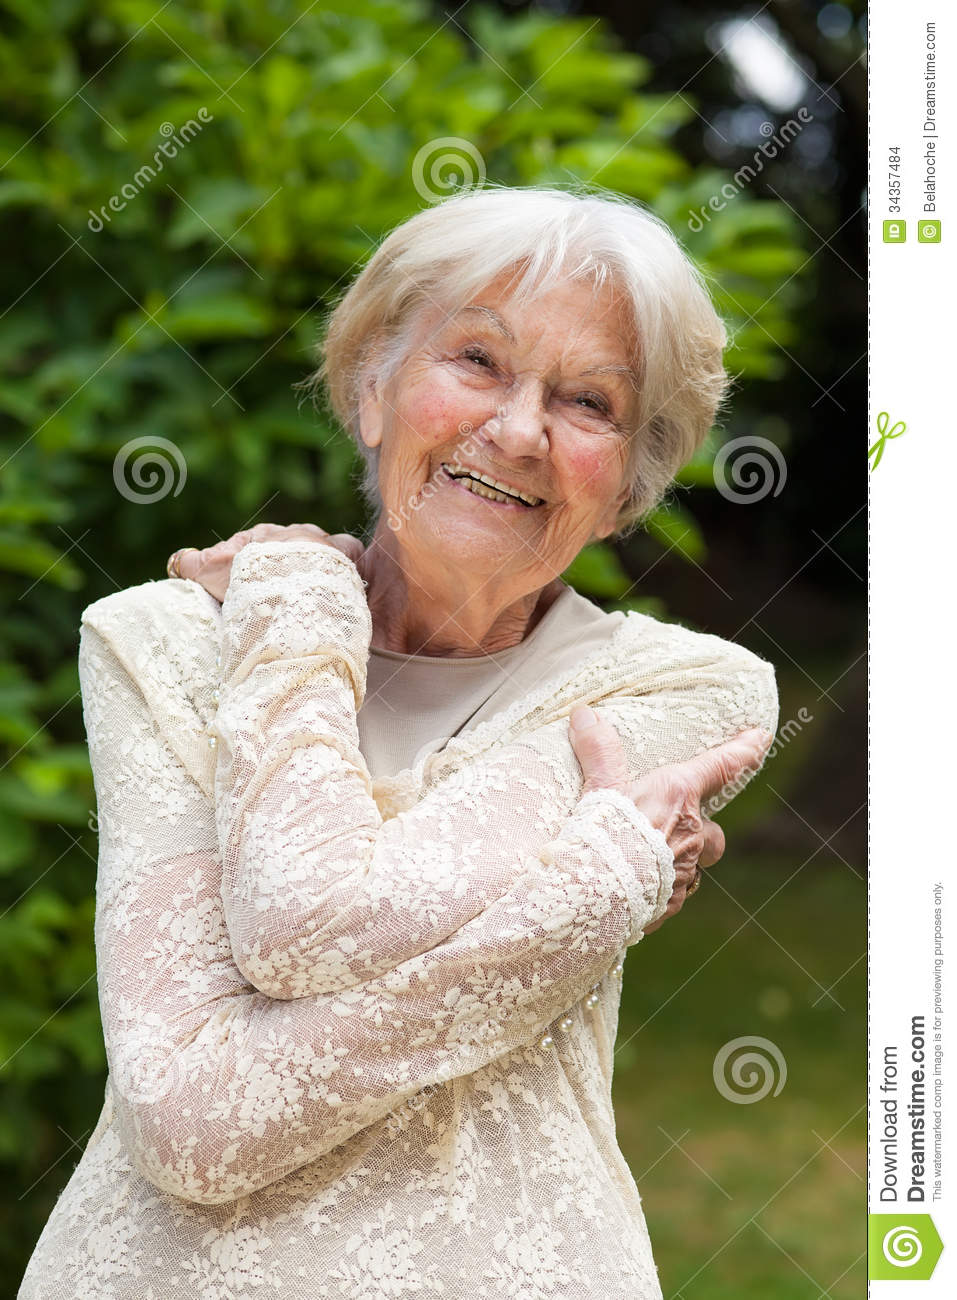 happy-laughing-elderly-woman-pretty-lacy